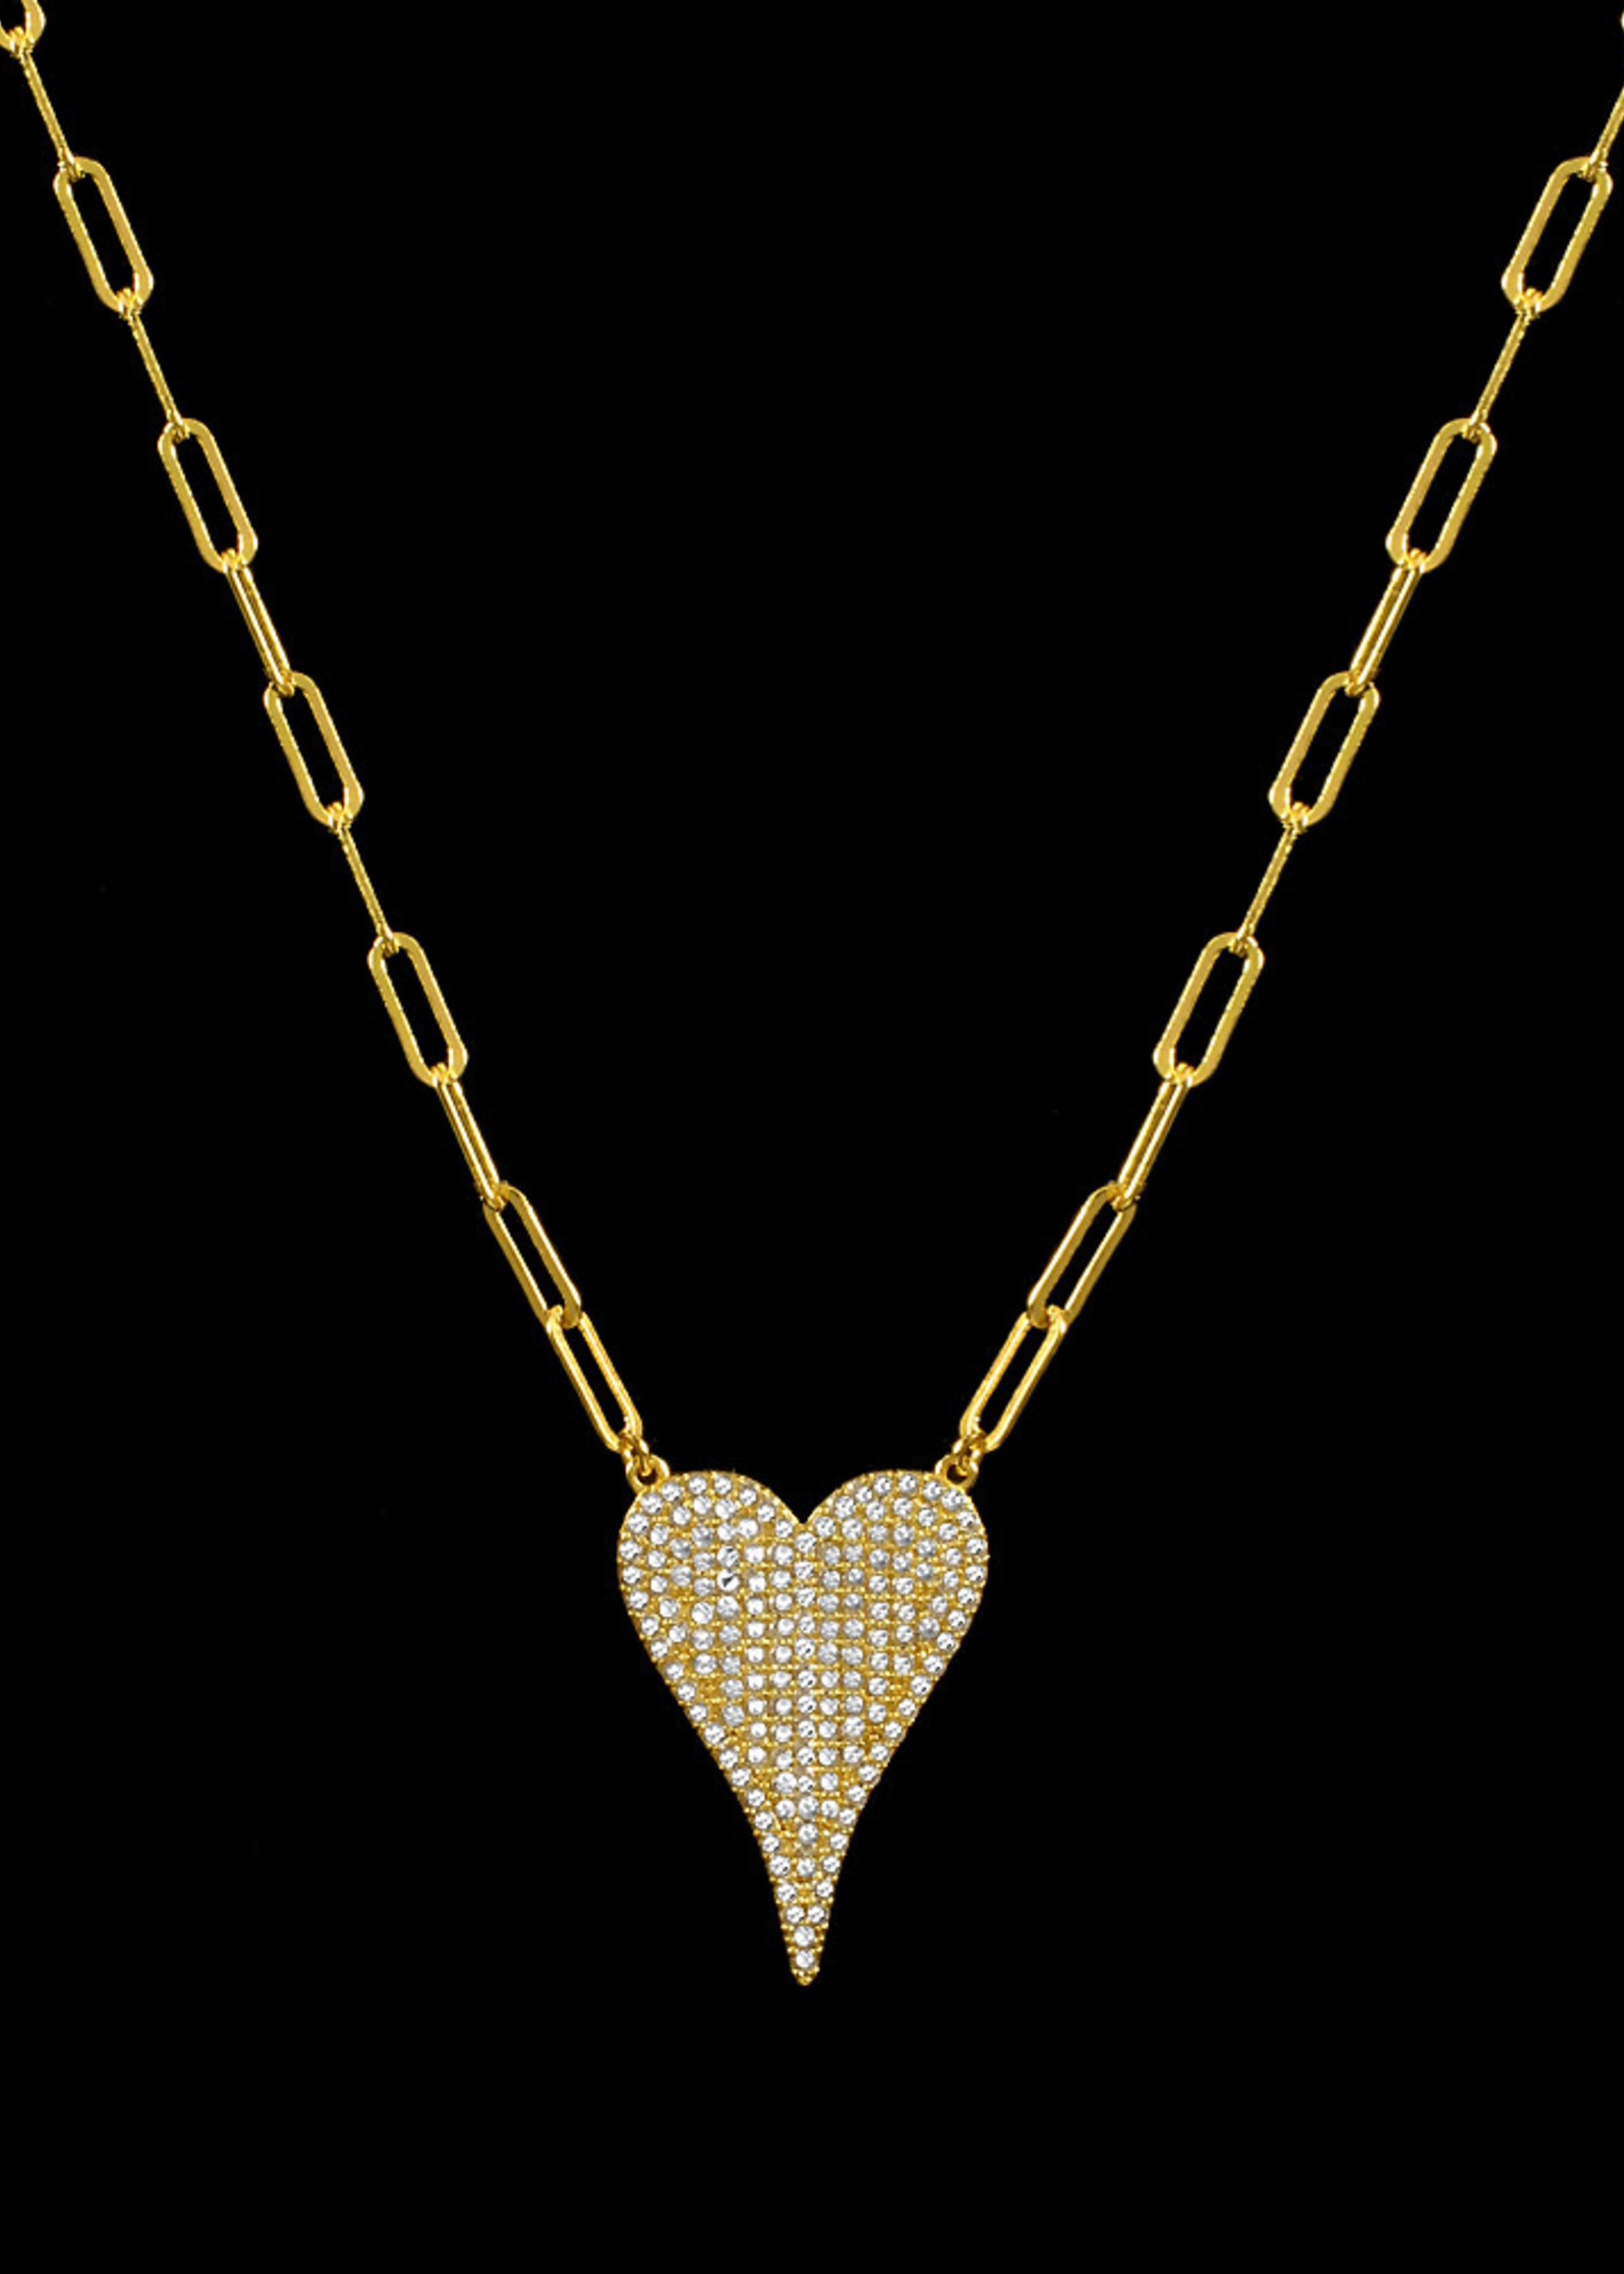 Be-Je Designs Beje - Gold Paperclip Chain w/Large Heart (KC068N)